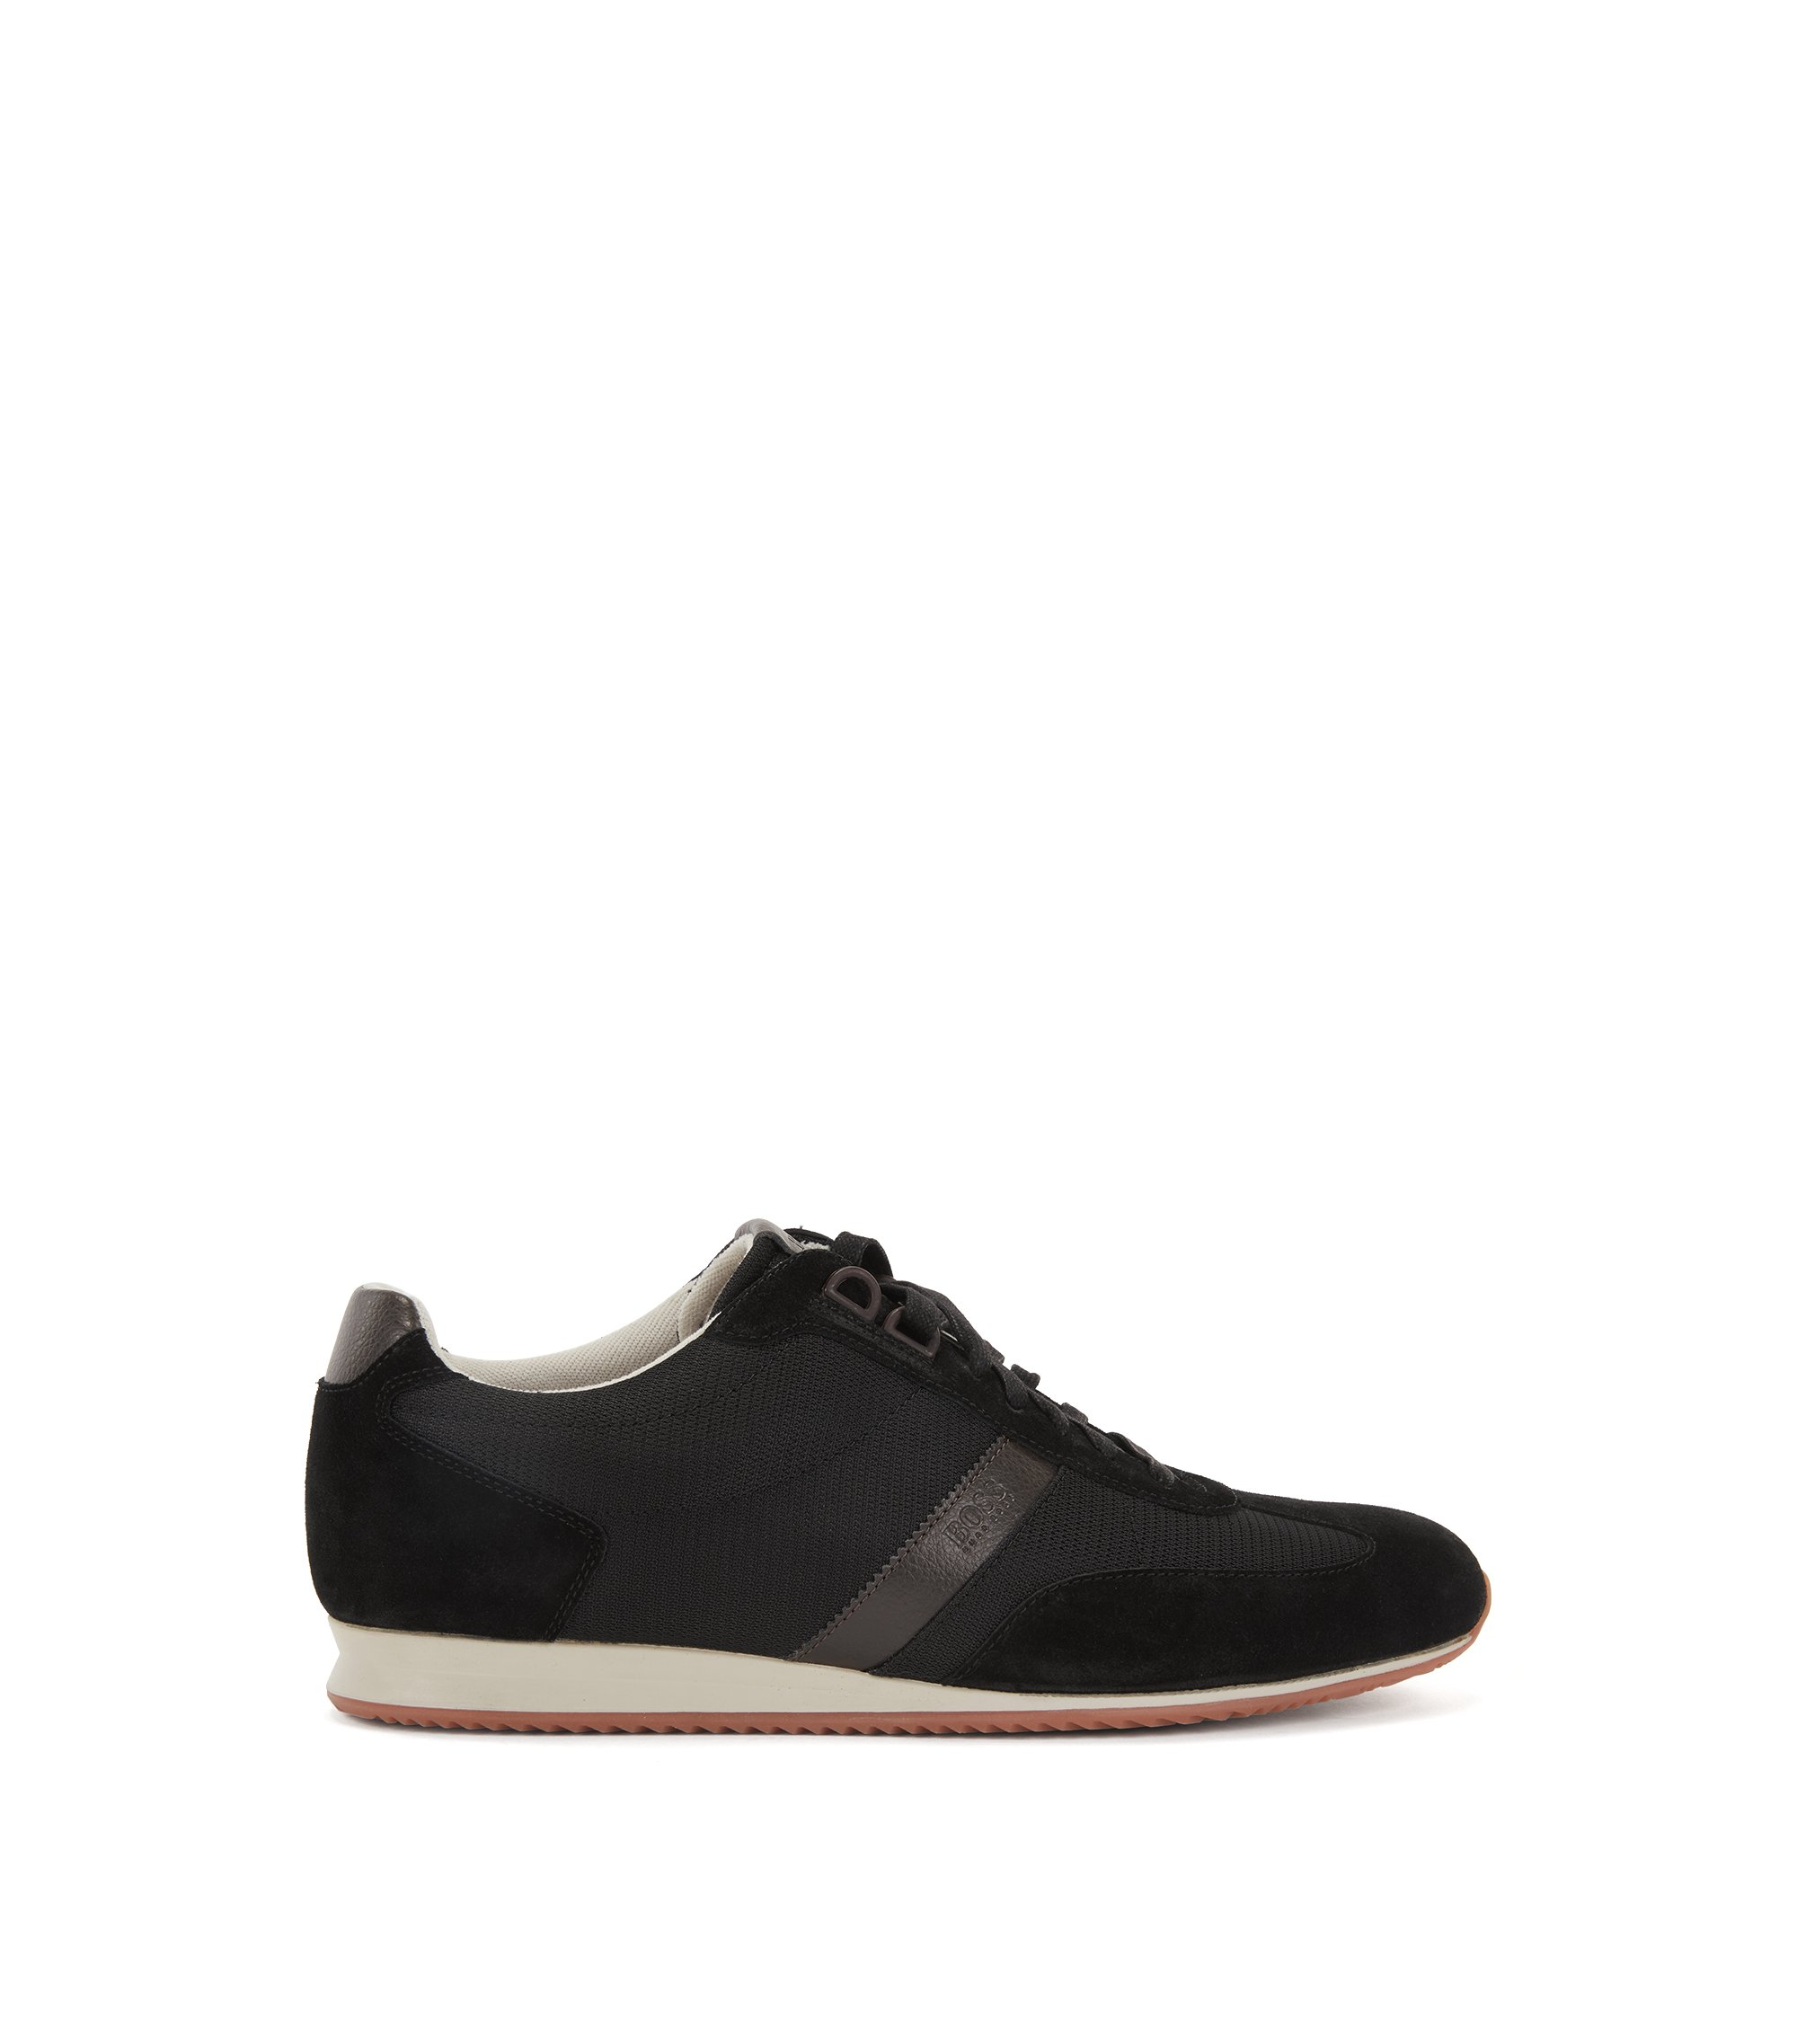 Low-top trainers with nylon and suede uppers, Black